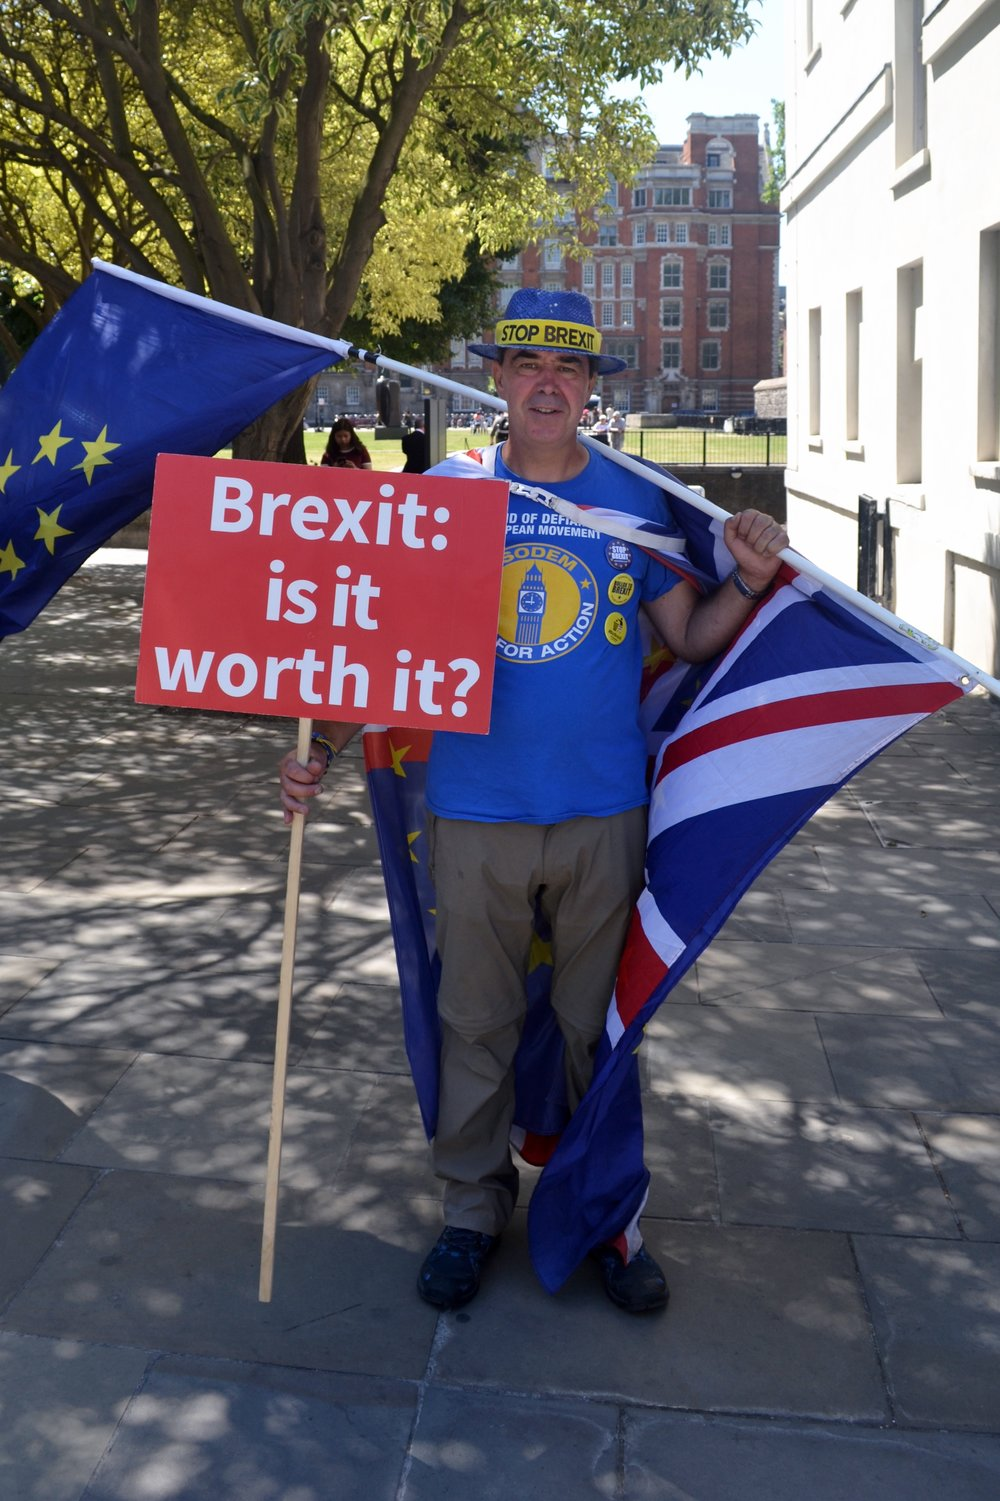 Brexit demonstration participant by College Garden